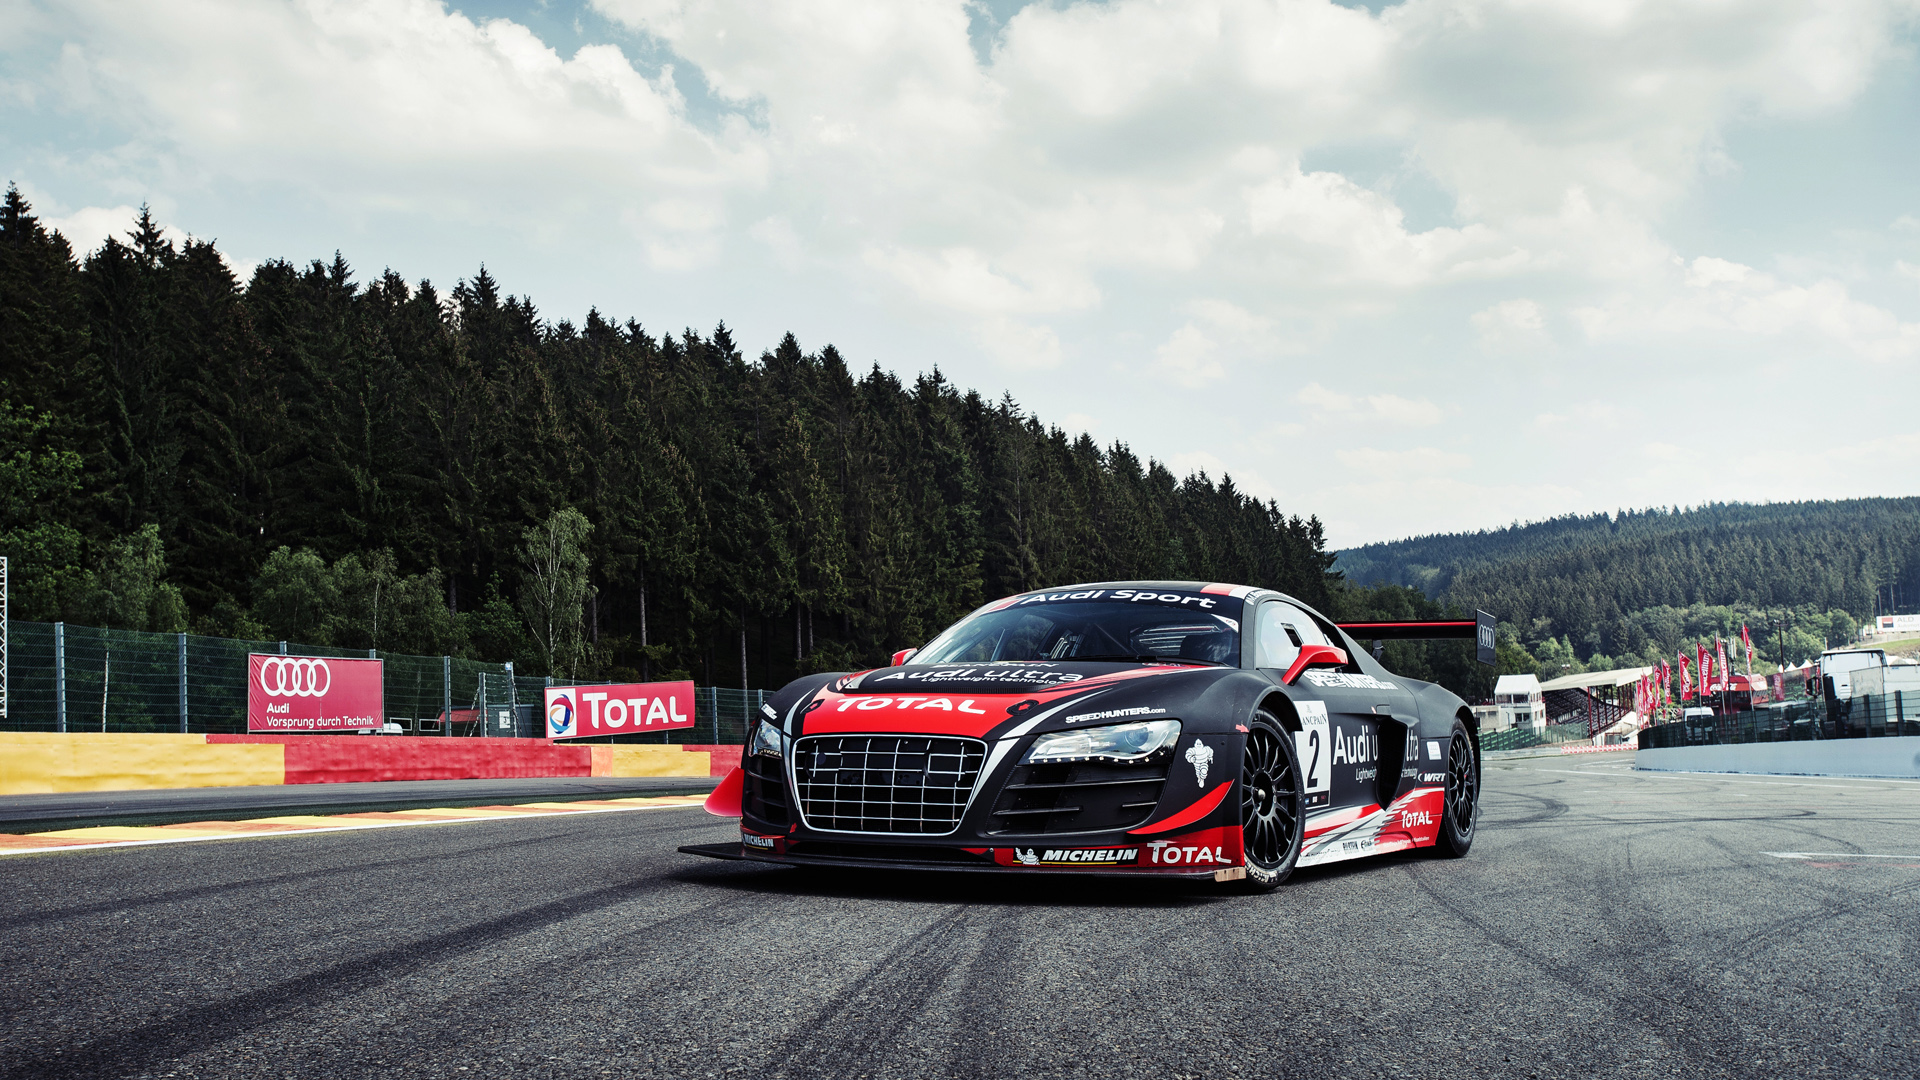 audi r8 wallpaper hd 45522